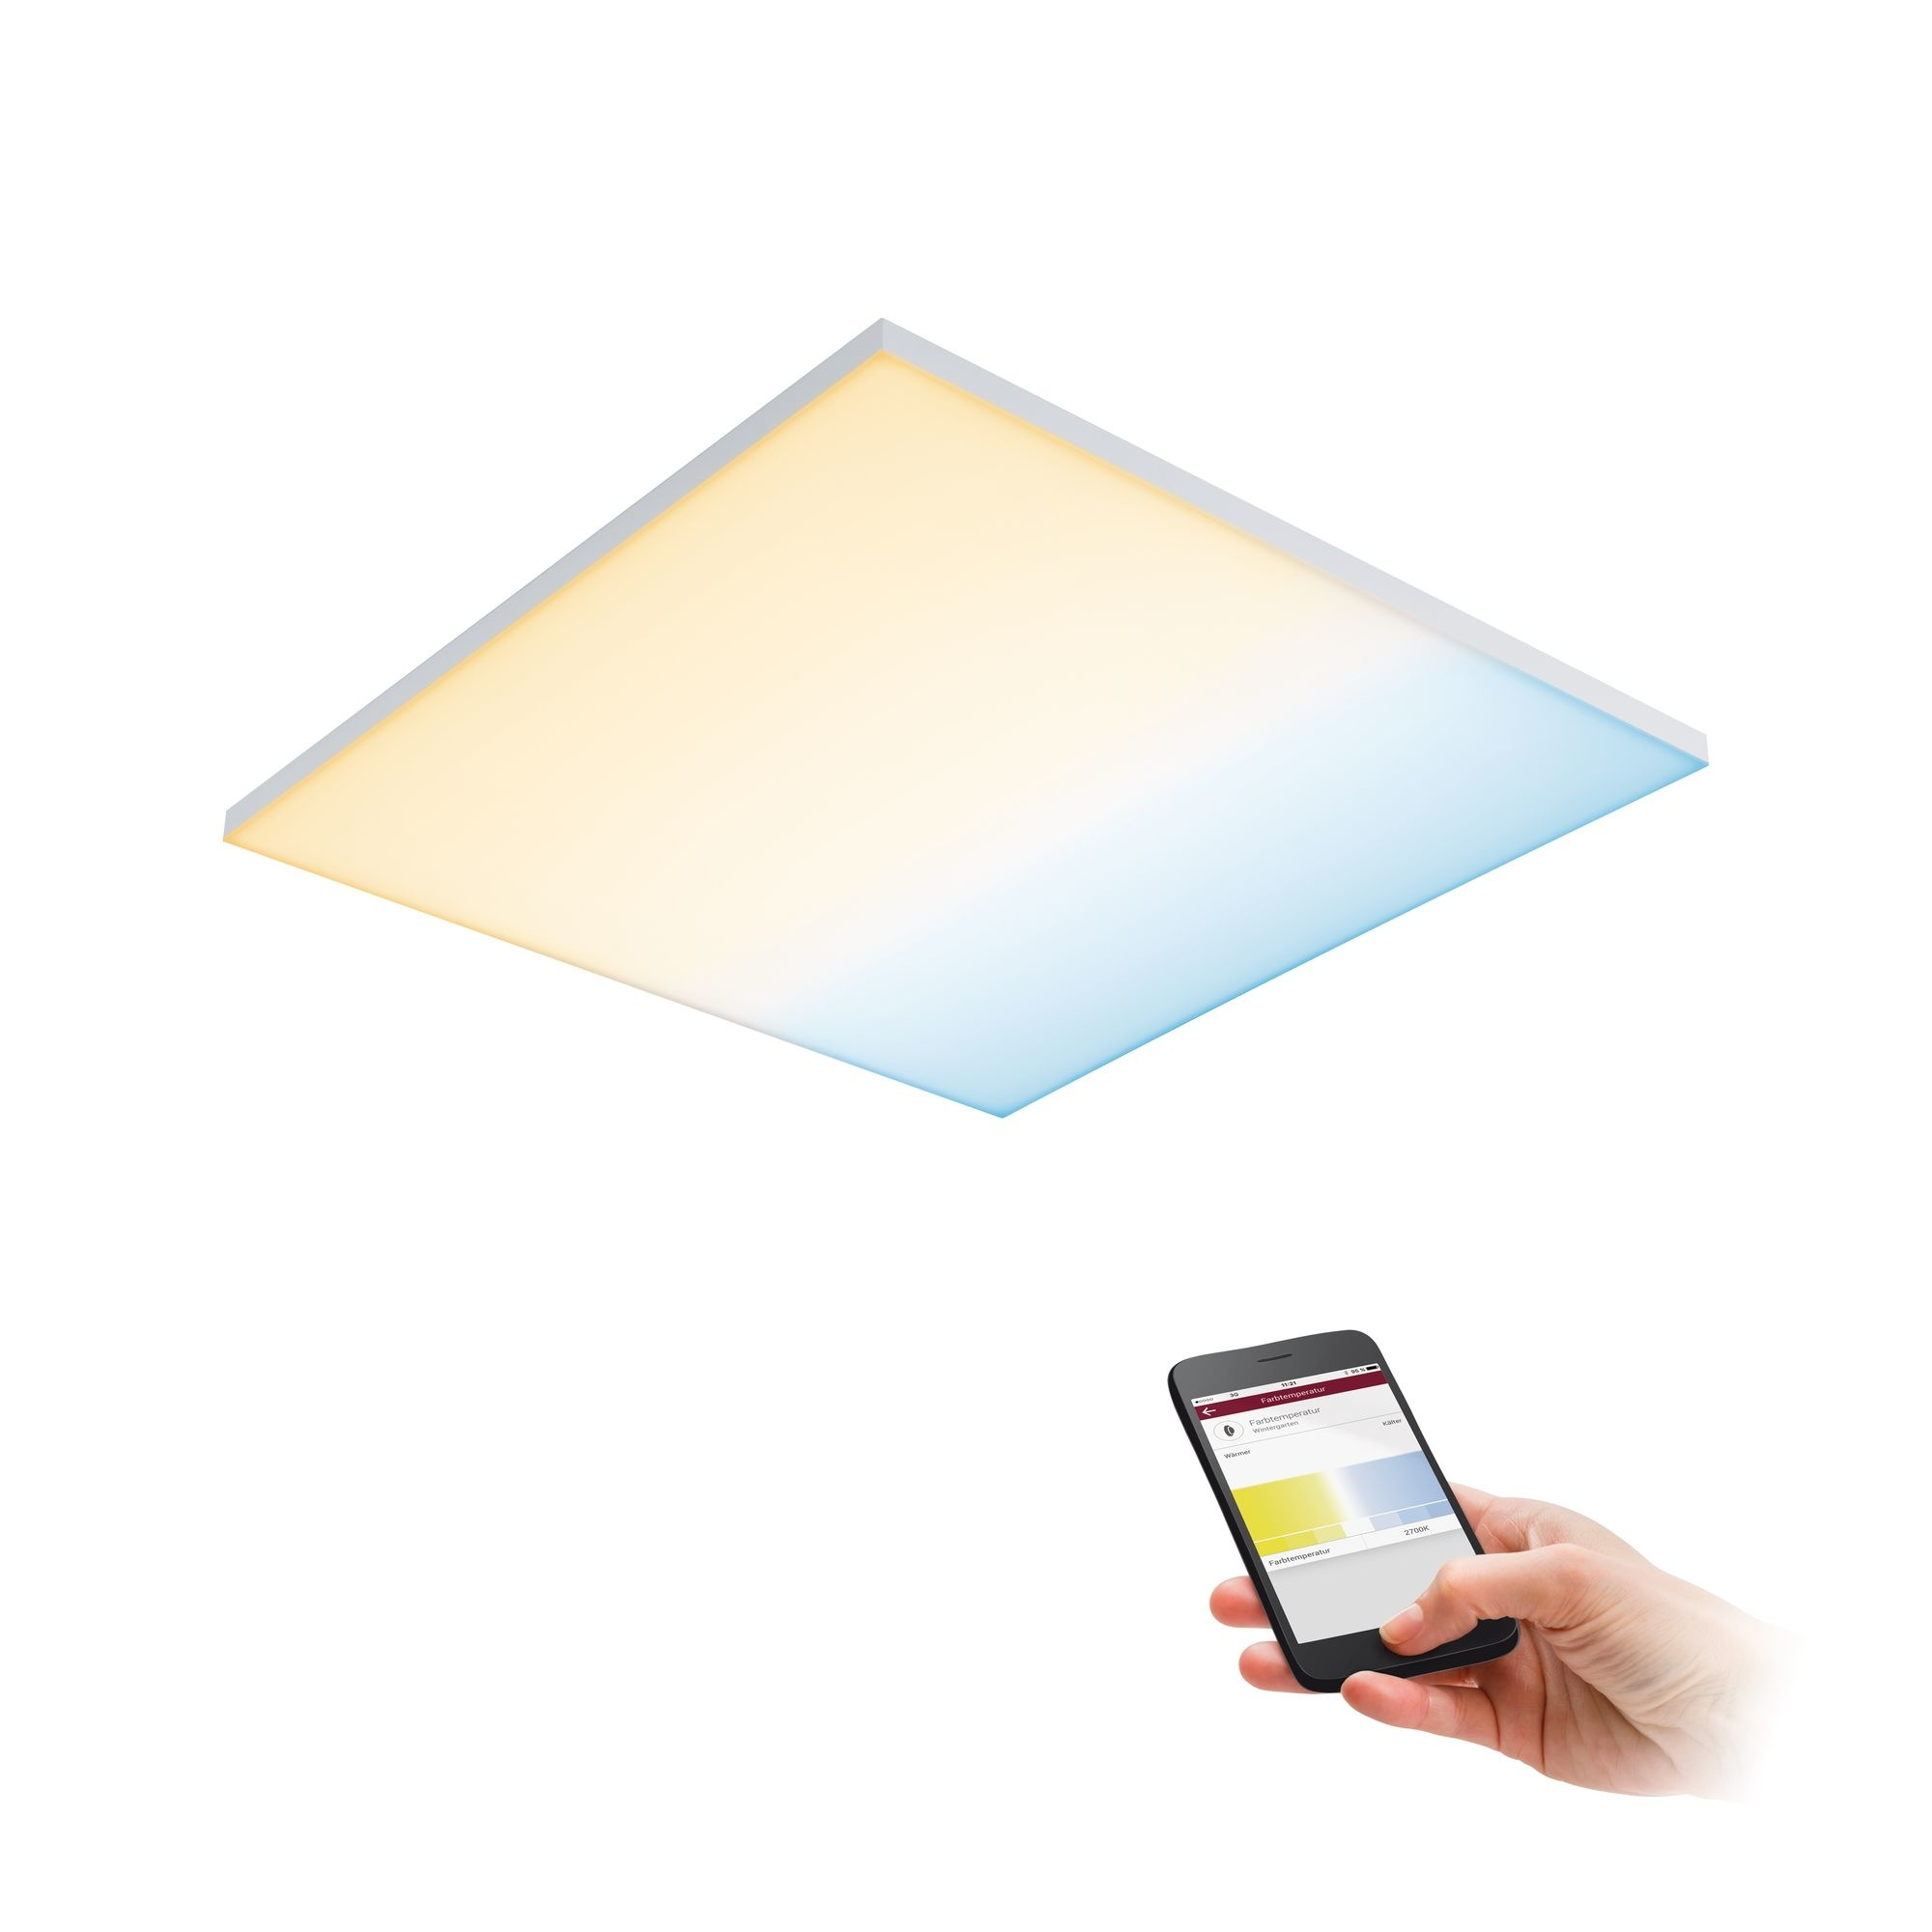 Paulmann LED Panel Velora SmartHome Zigbee 600x600mm 19,5 W Weiß matt Tunable White